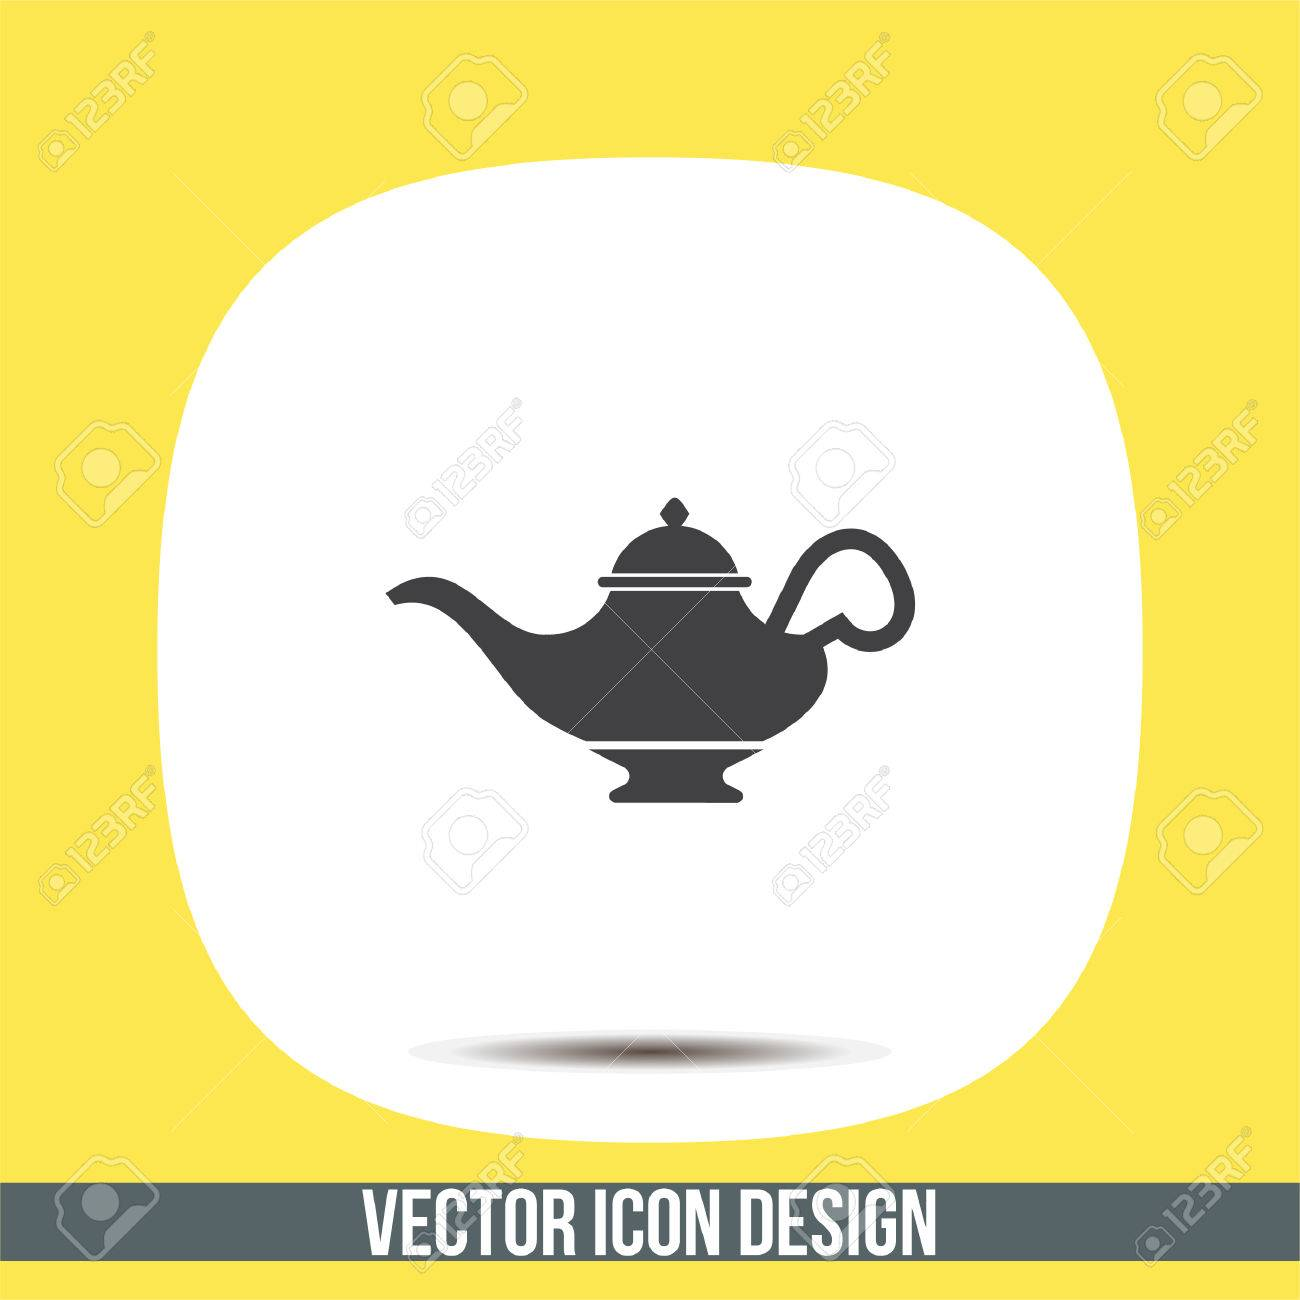 Magic Lamp Vector Icon. Genie Sign. Aladdin Symbol Royalty Free ... for Genie Icon  585hul